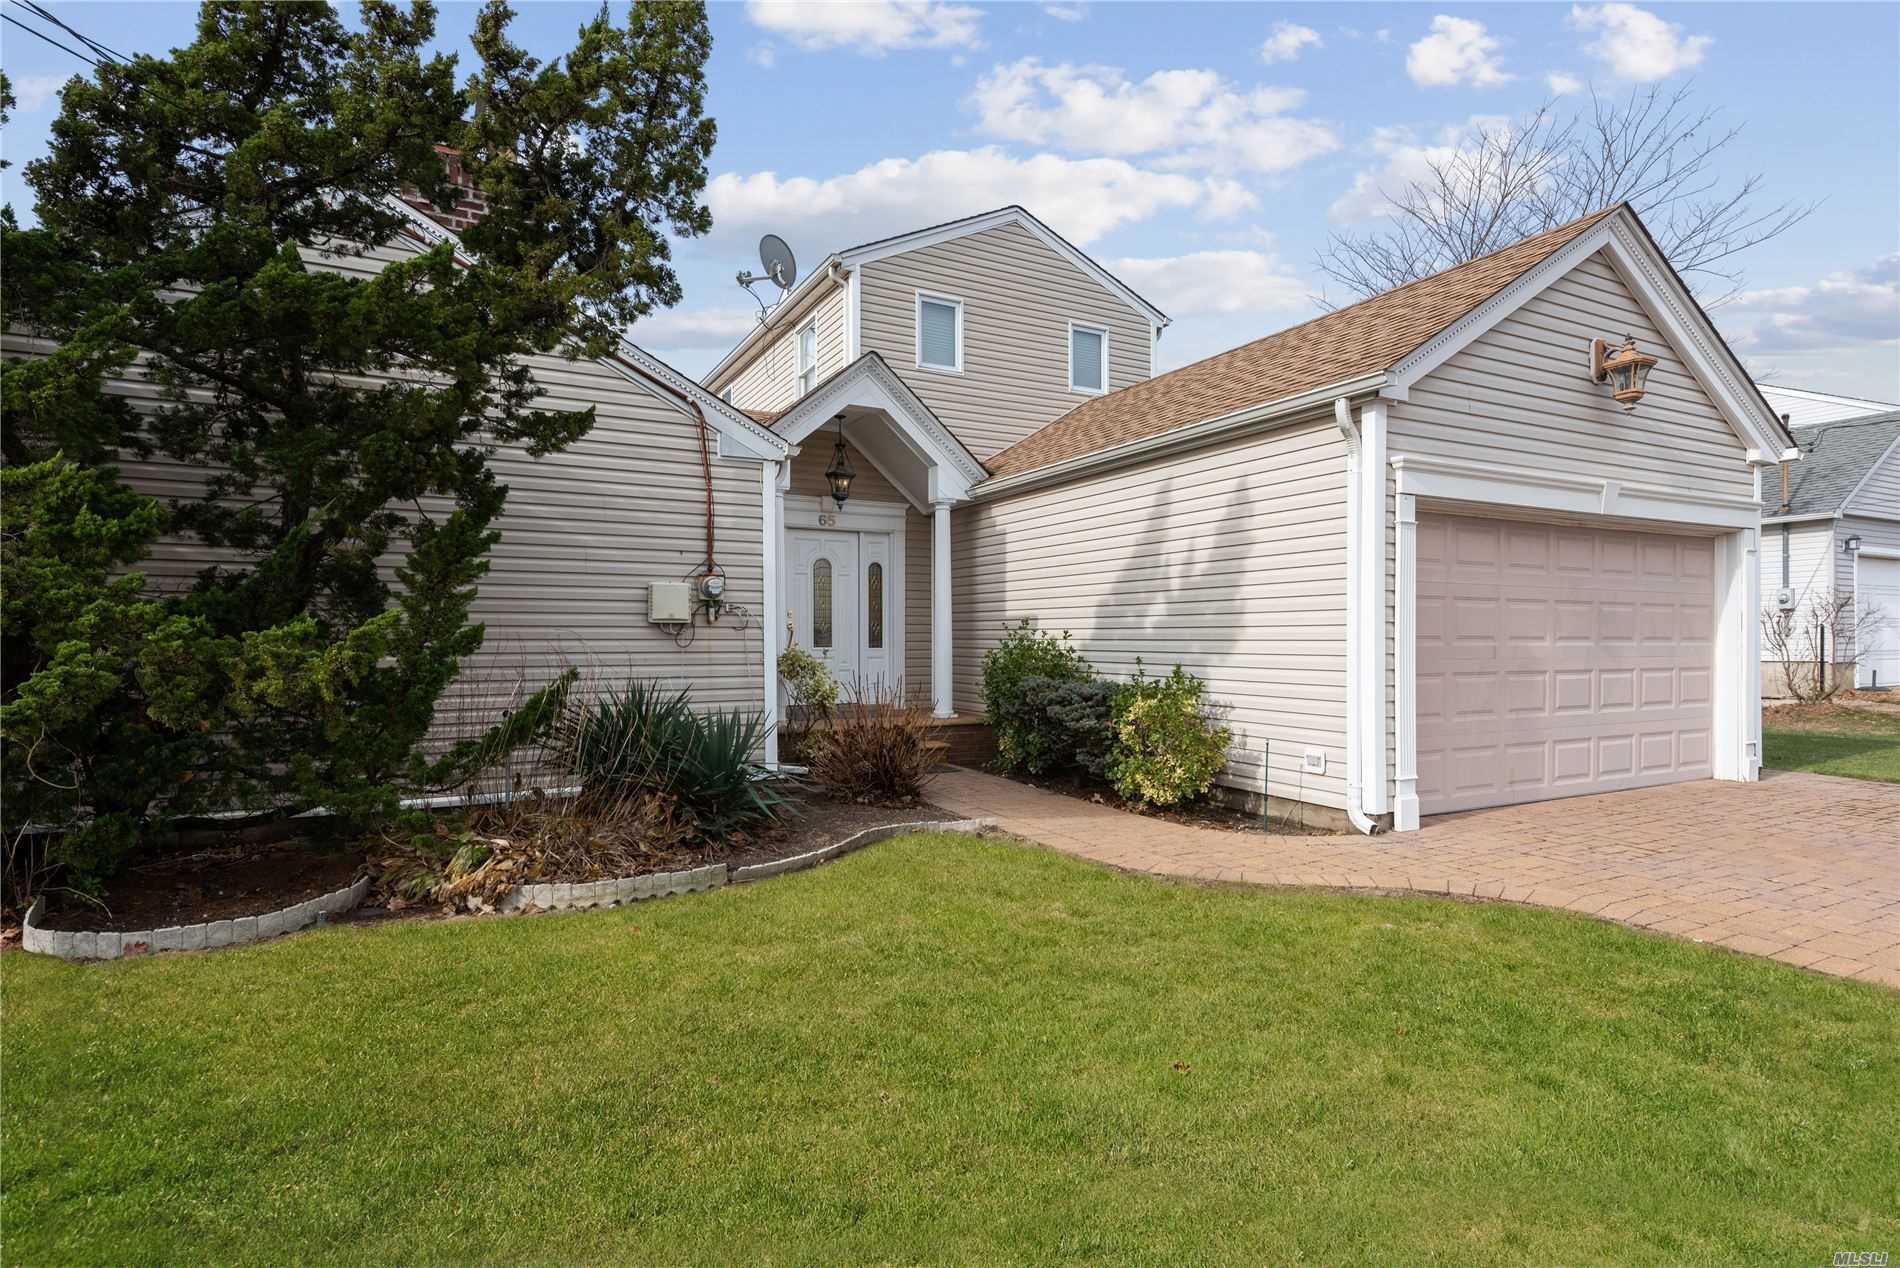 65 Stillwater Ave 11758 - One of Massapequa Homes for Sale